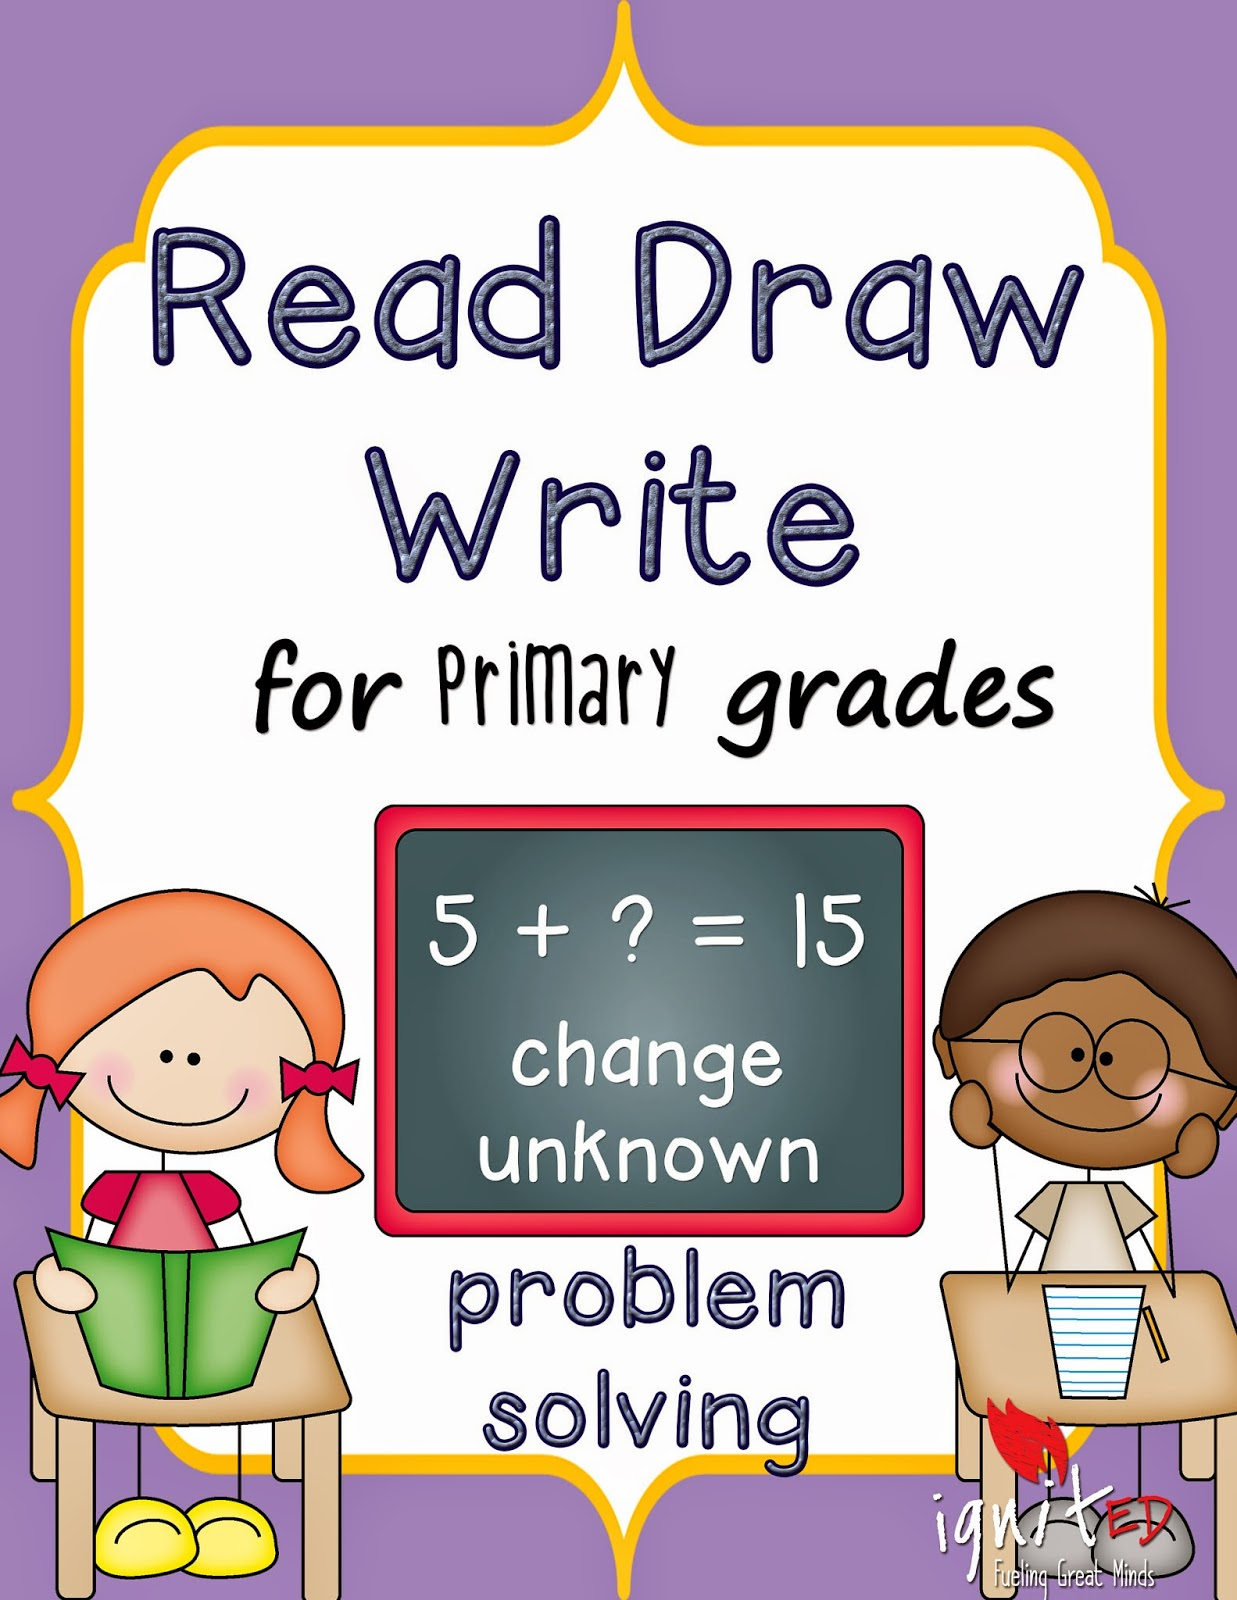 Rdw process read, draw, write. Ppt video online download.